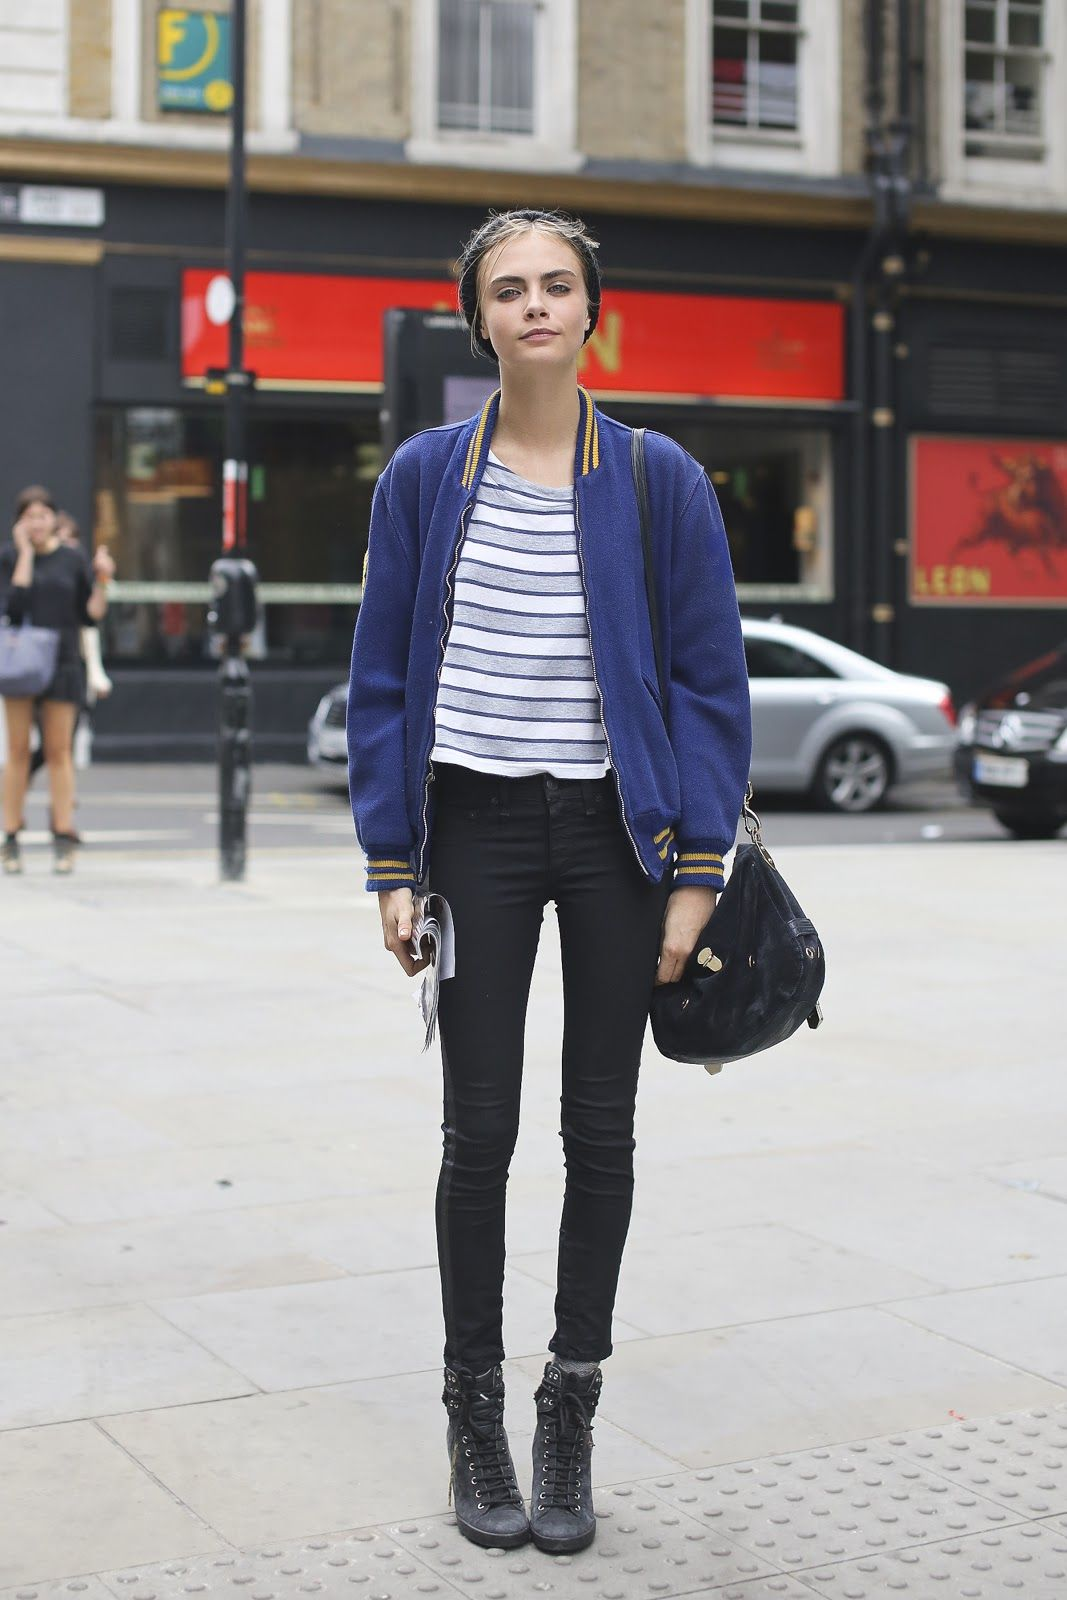 97d2d39383b1be Cara Delevige Hipster Outfit Fashion Model